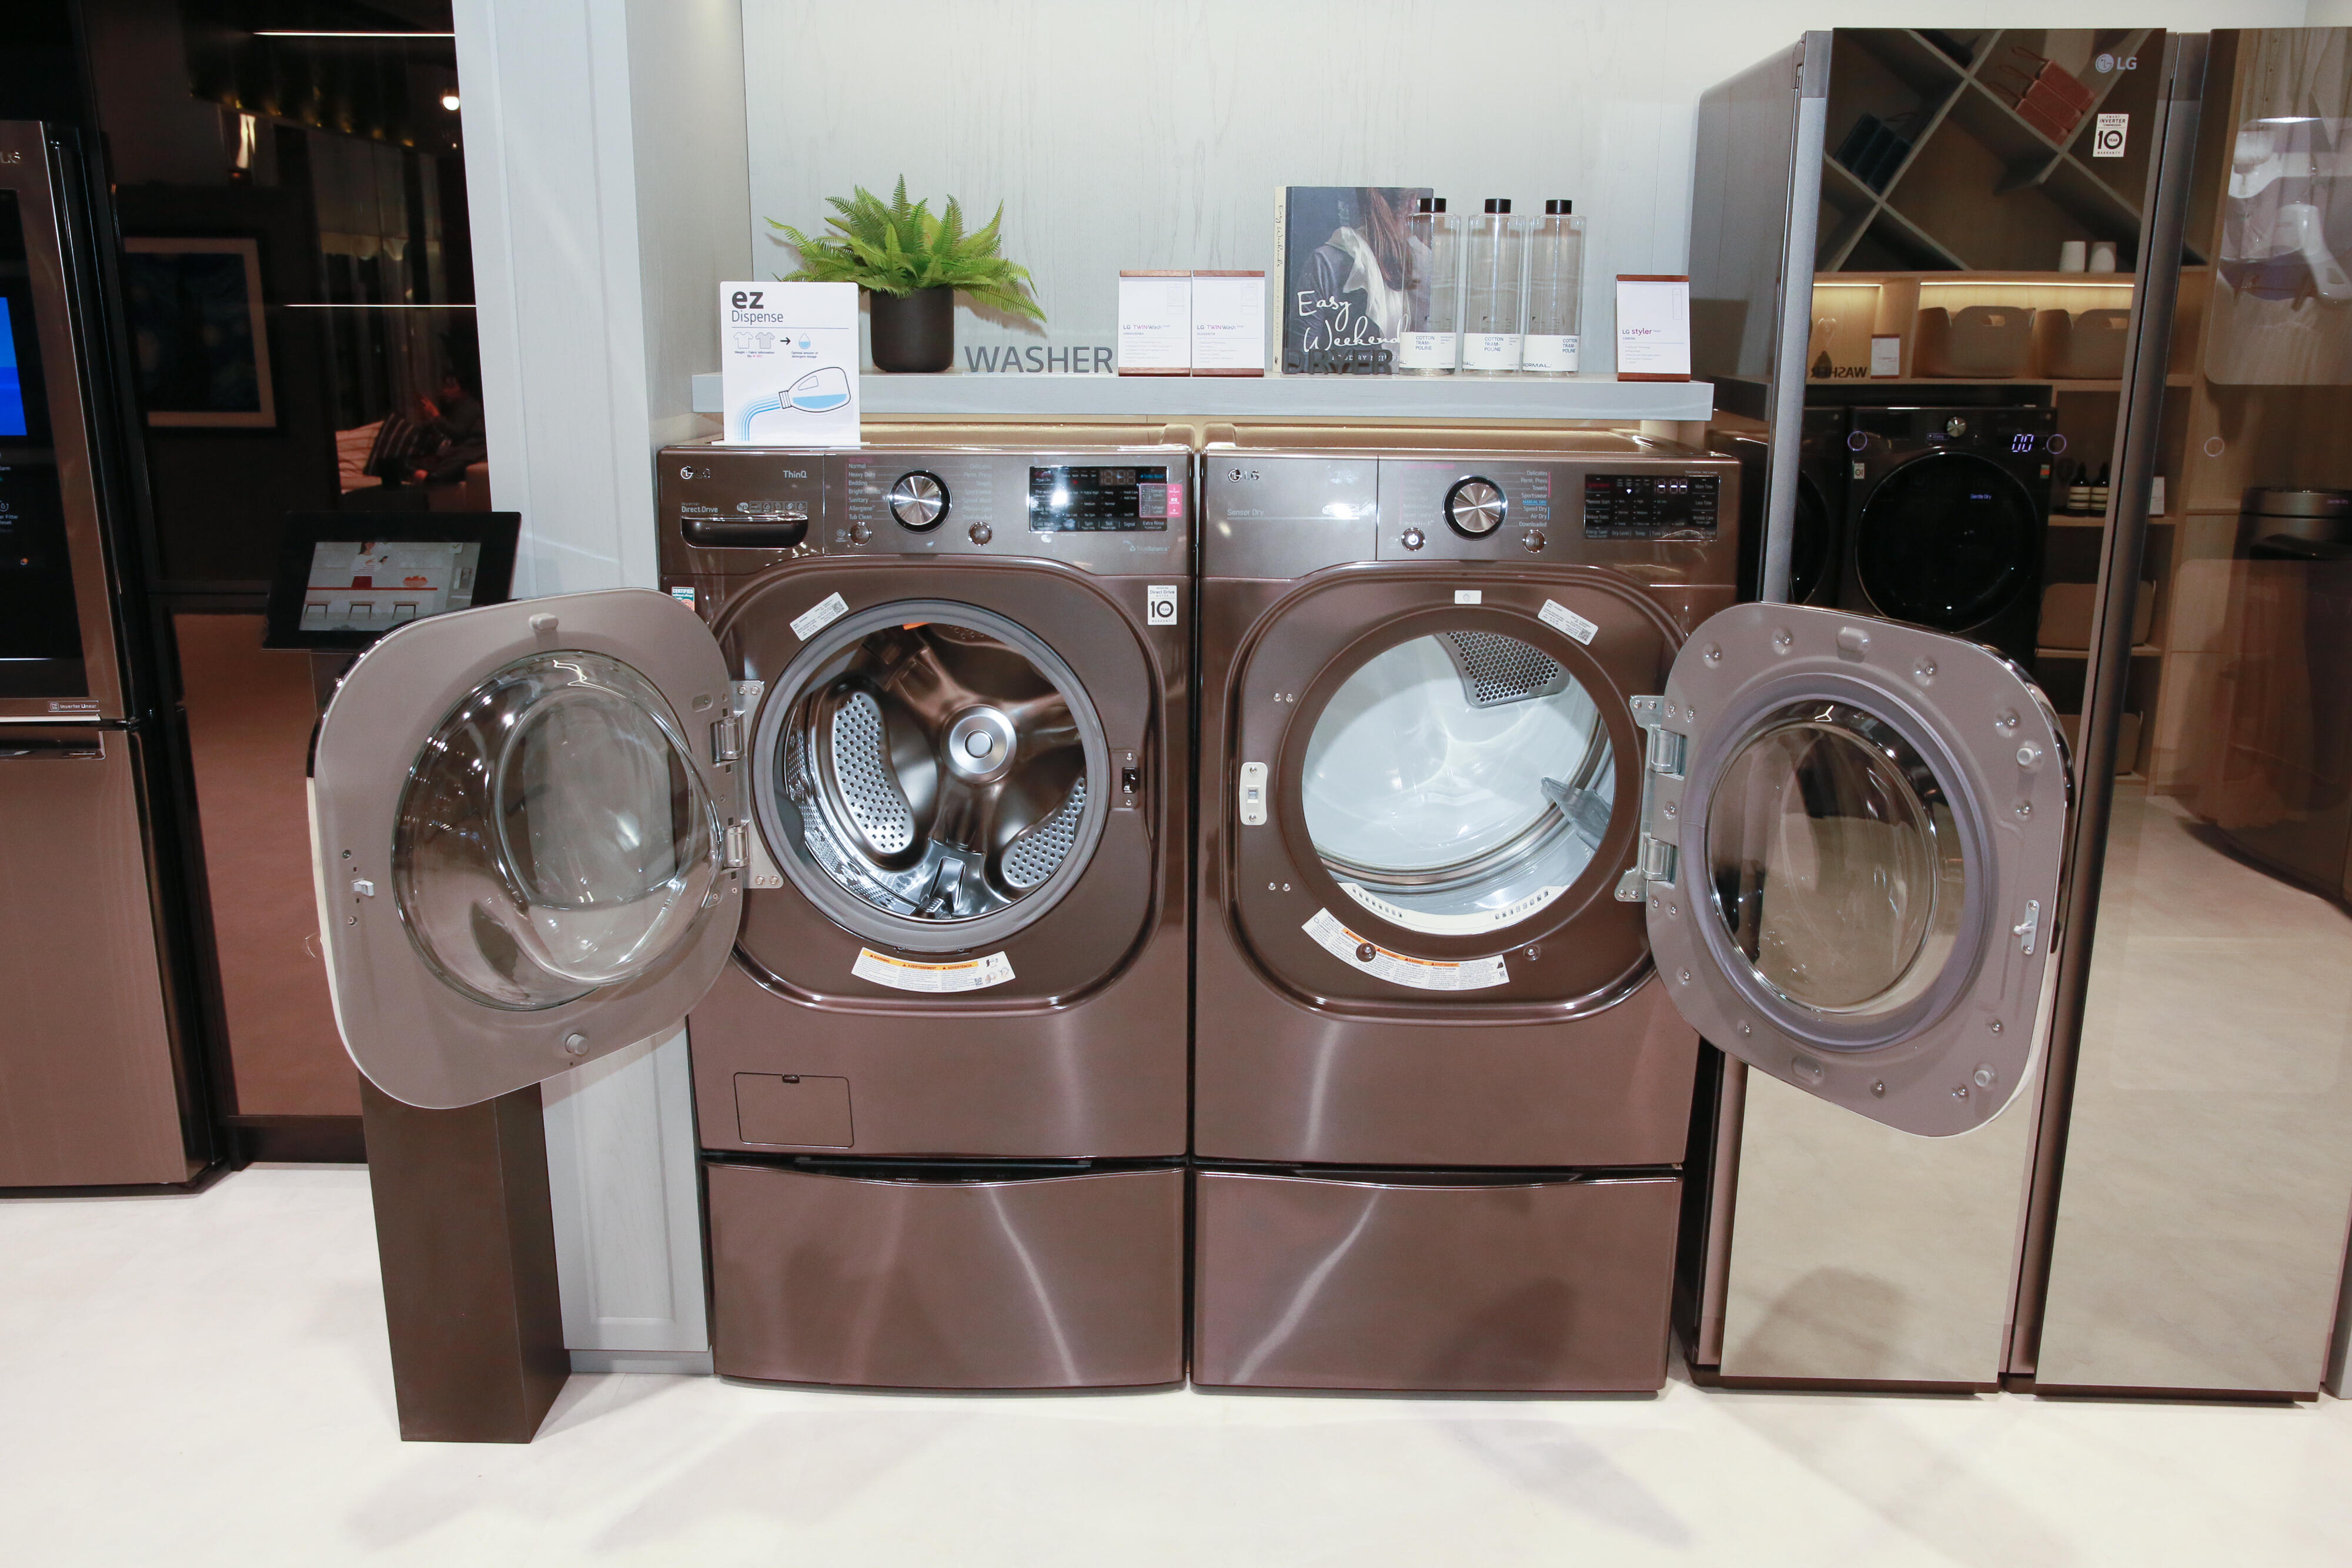 lg-washer-with-ai